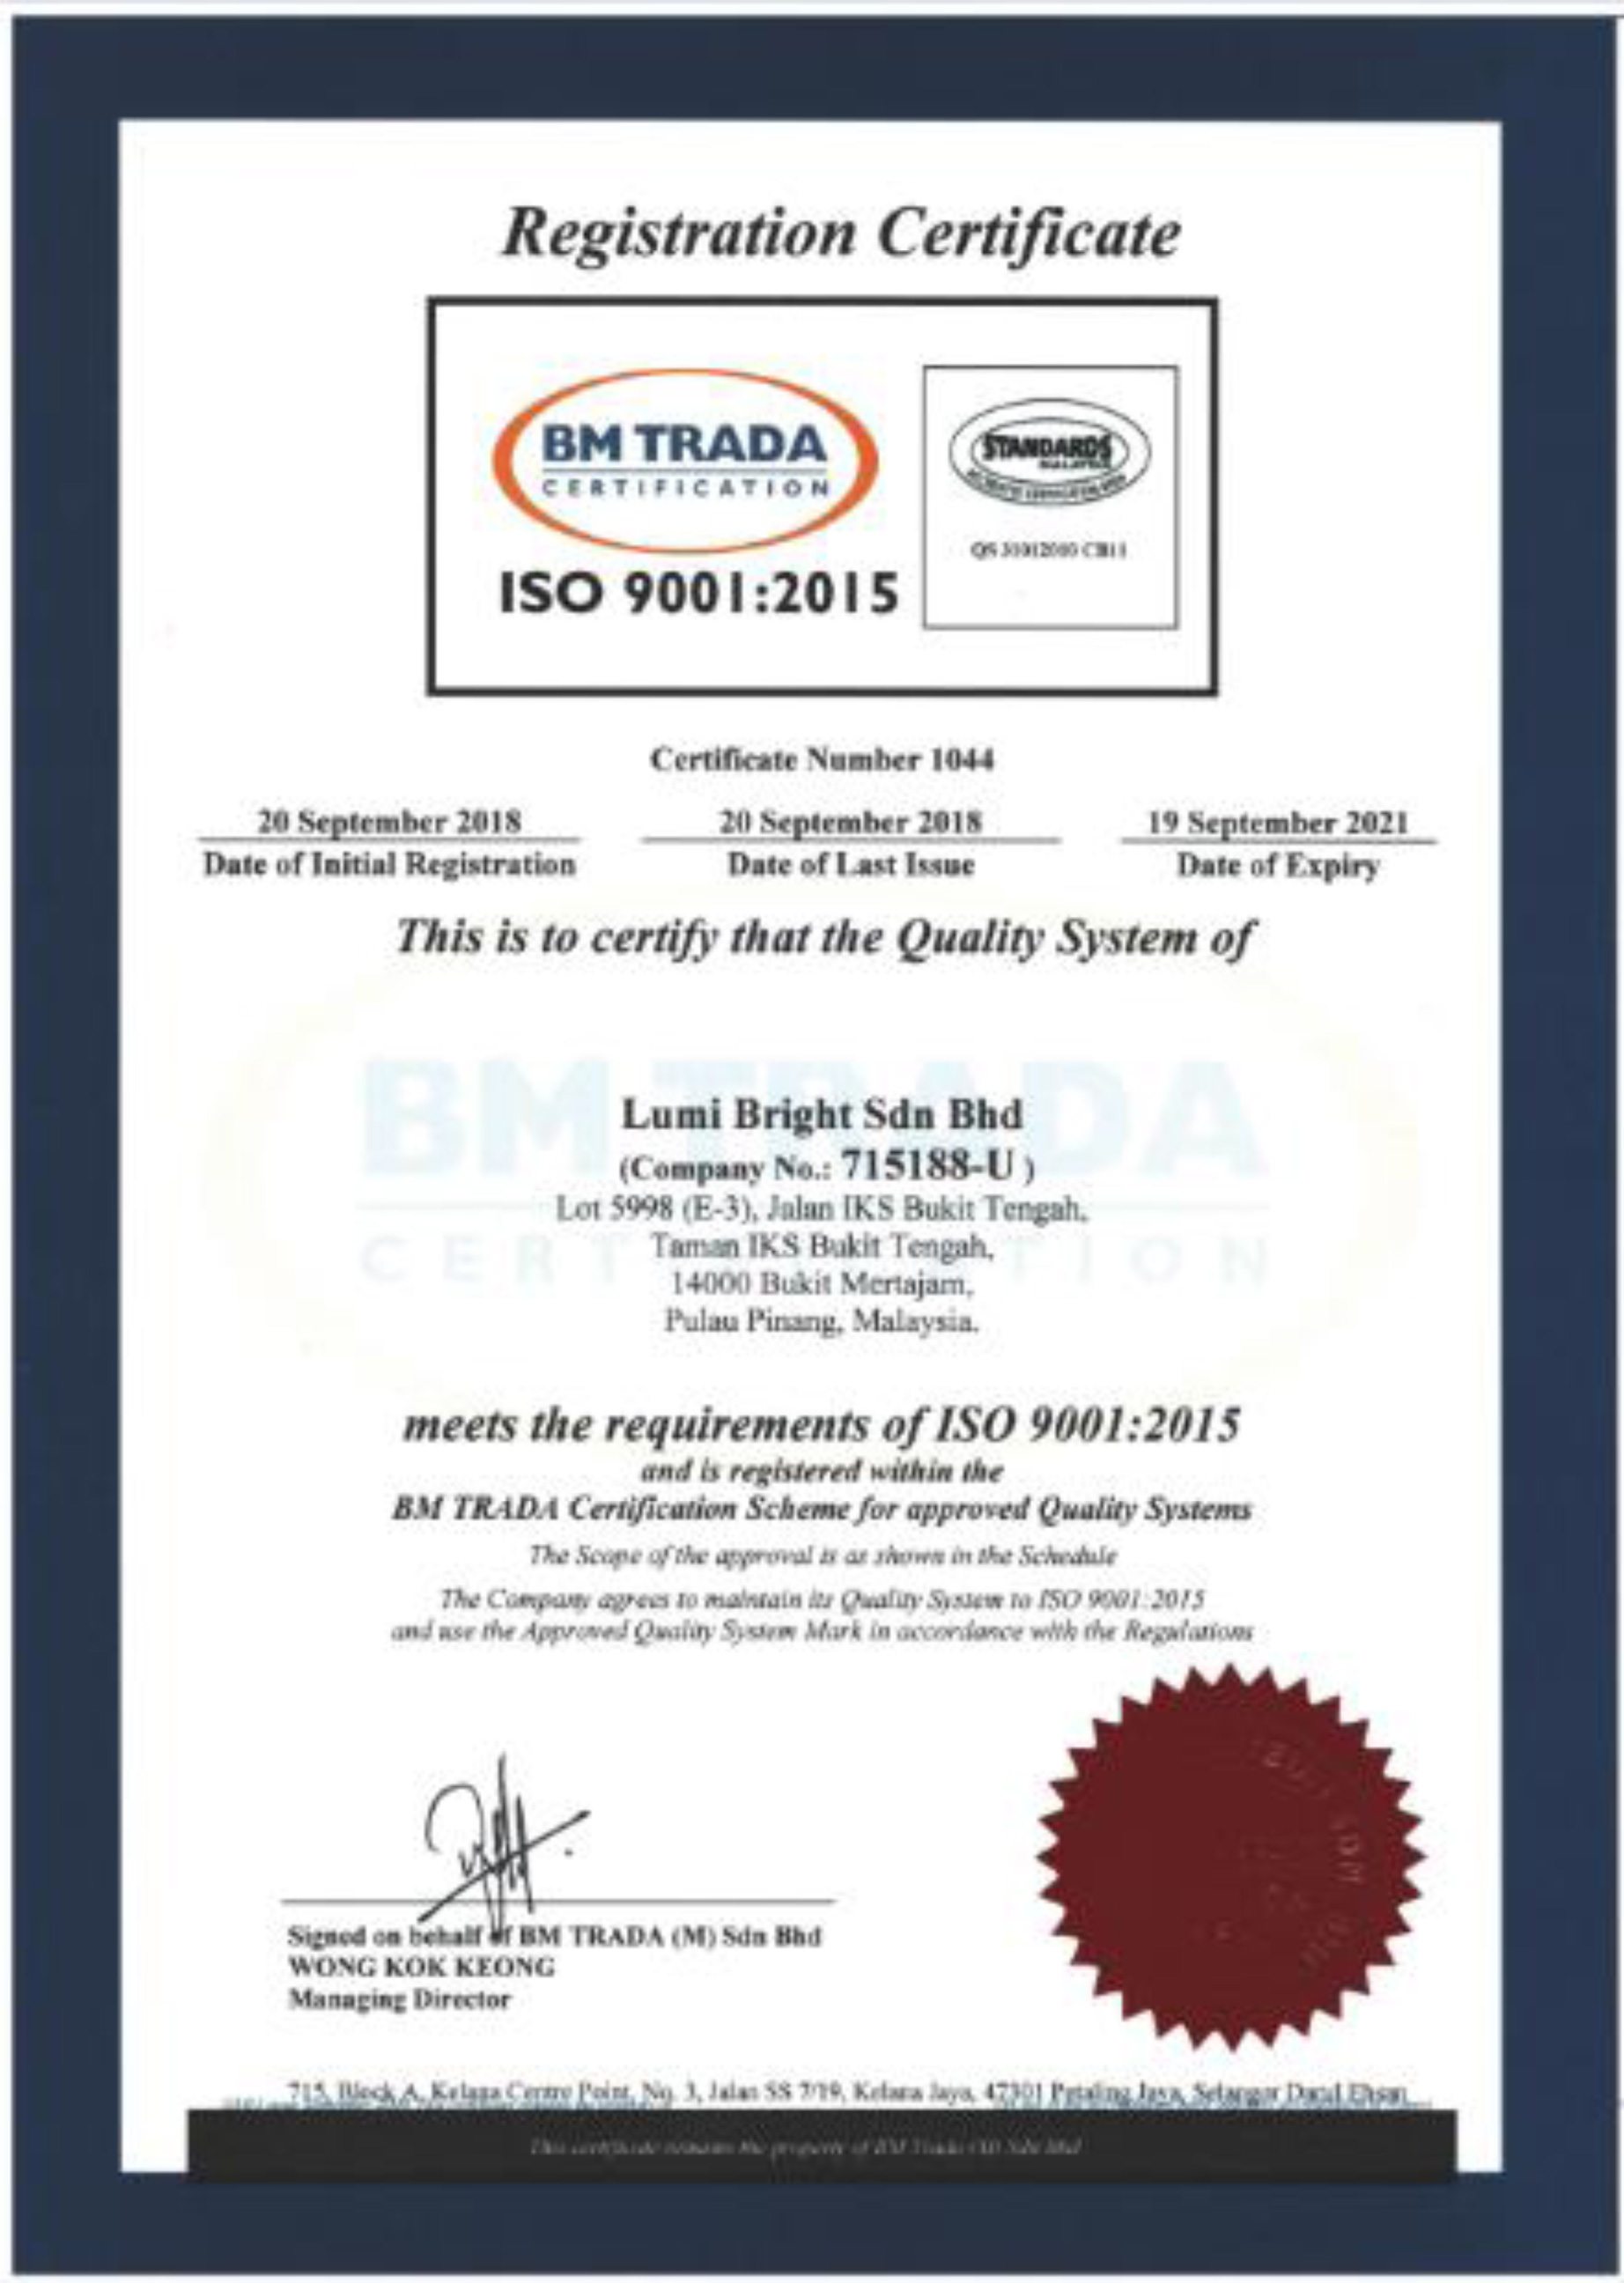 Registration Certificate of ISO 90012015_01